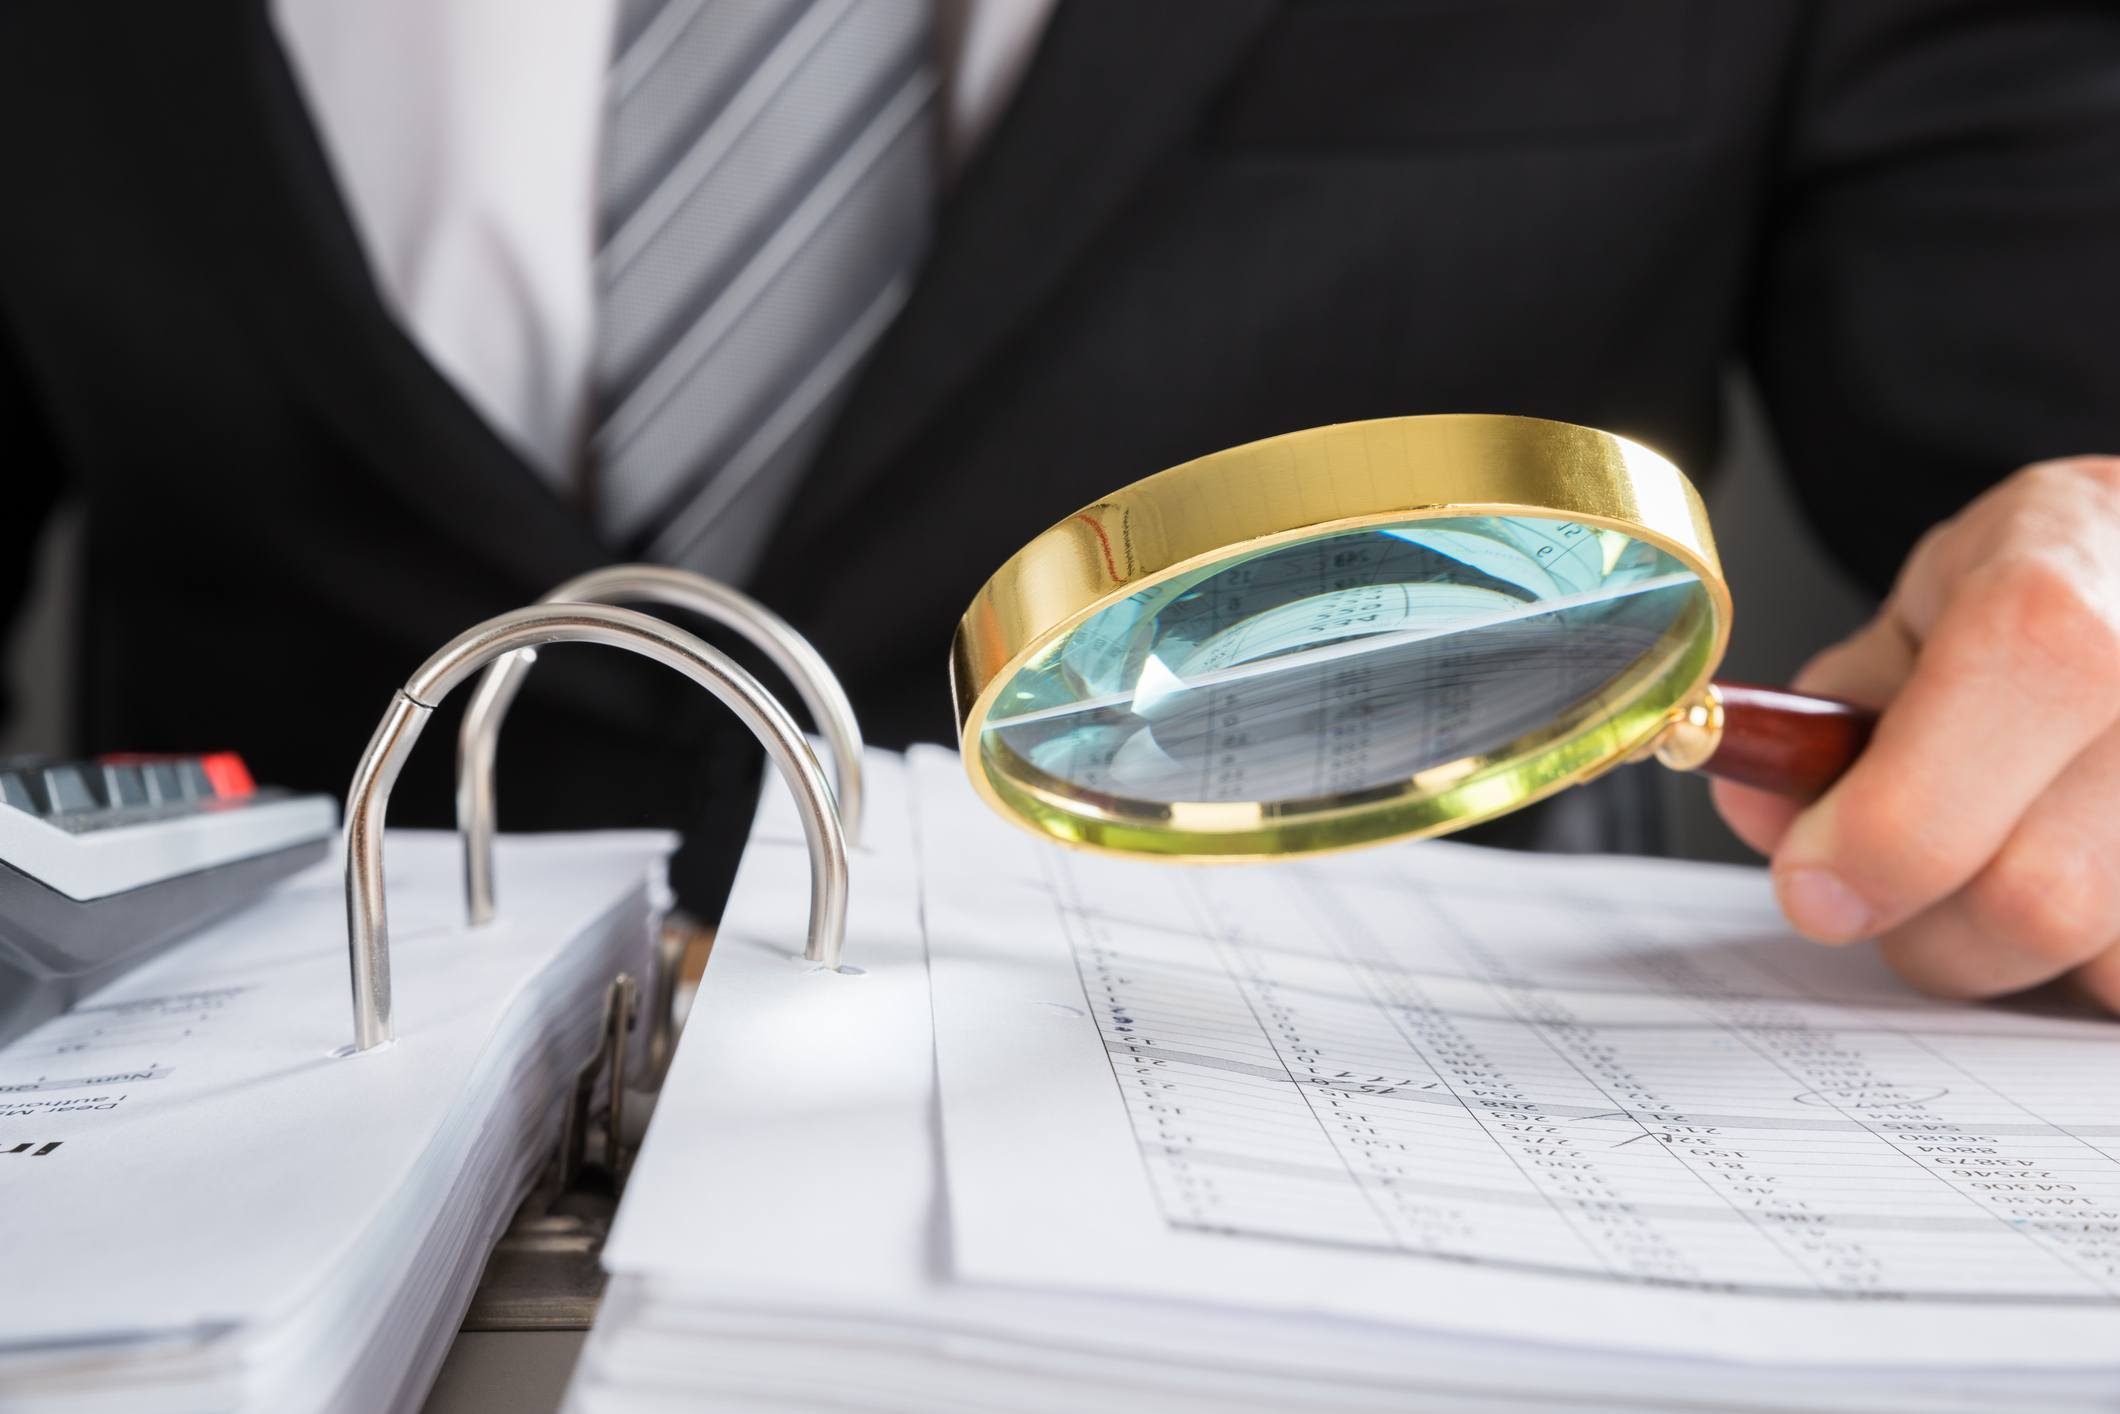 Examining tax audit with magnifying glass